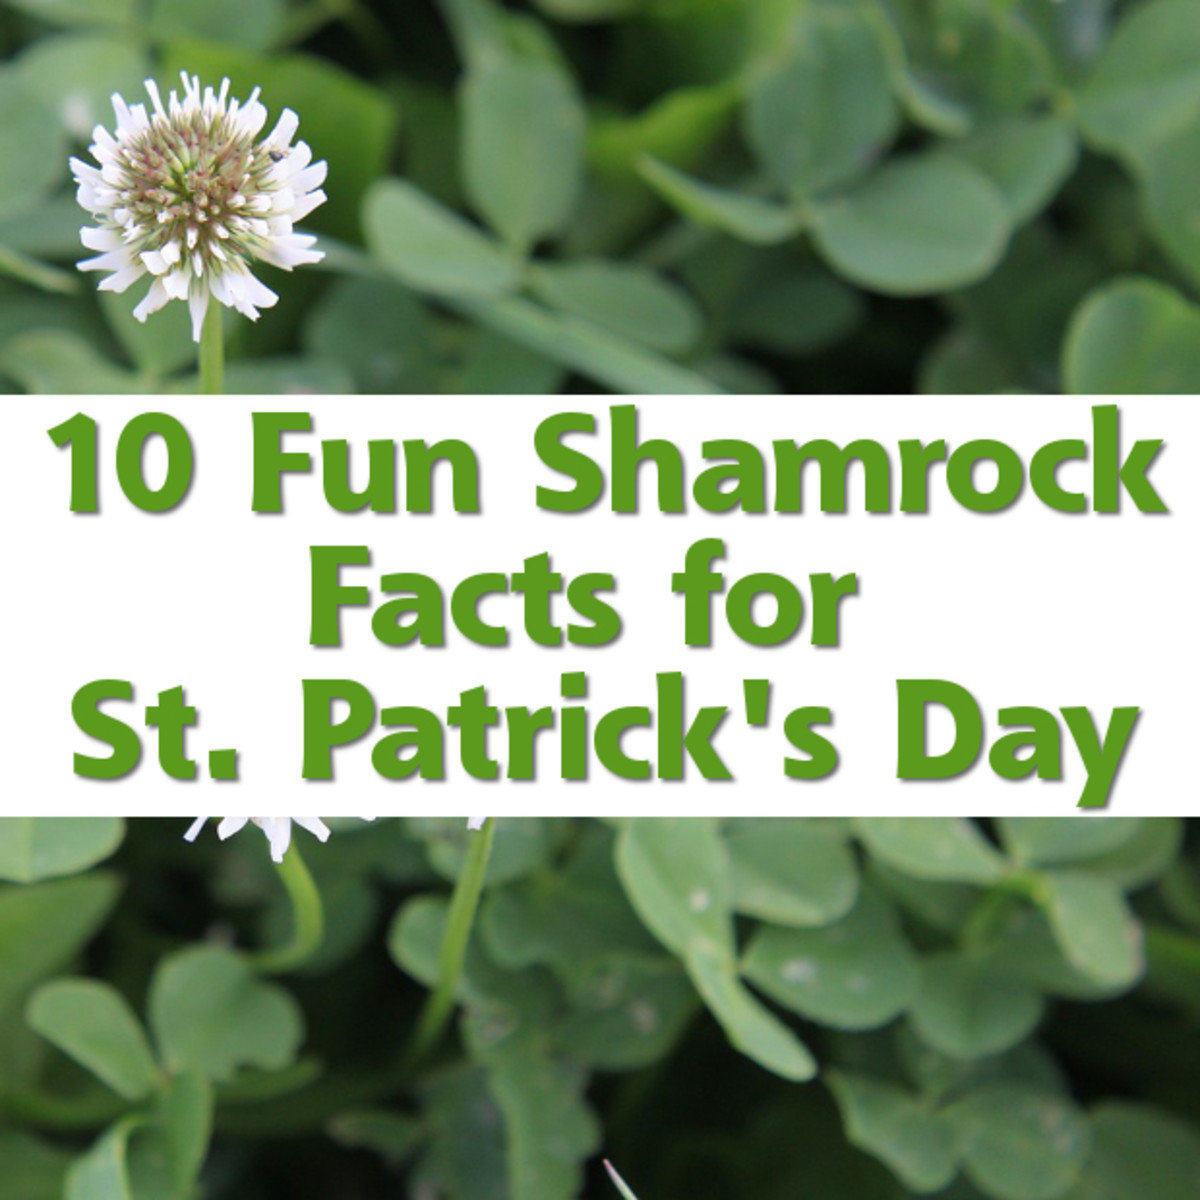 10 Fun Shamrock Facts for St. Patrick's Day